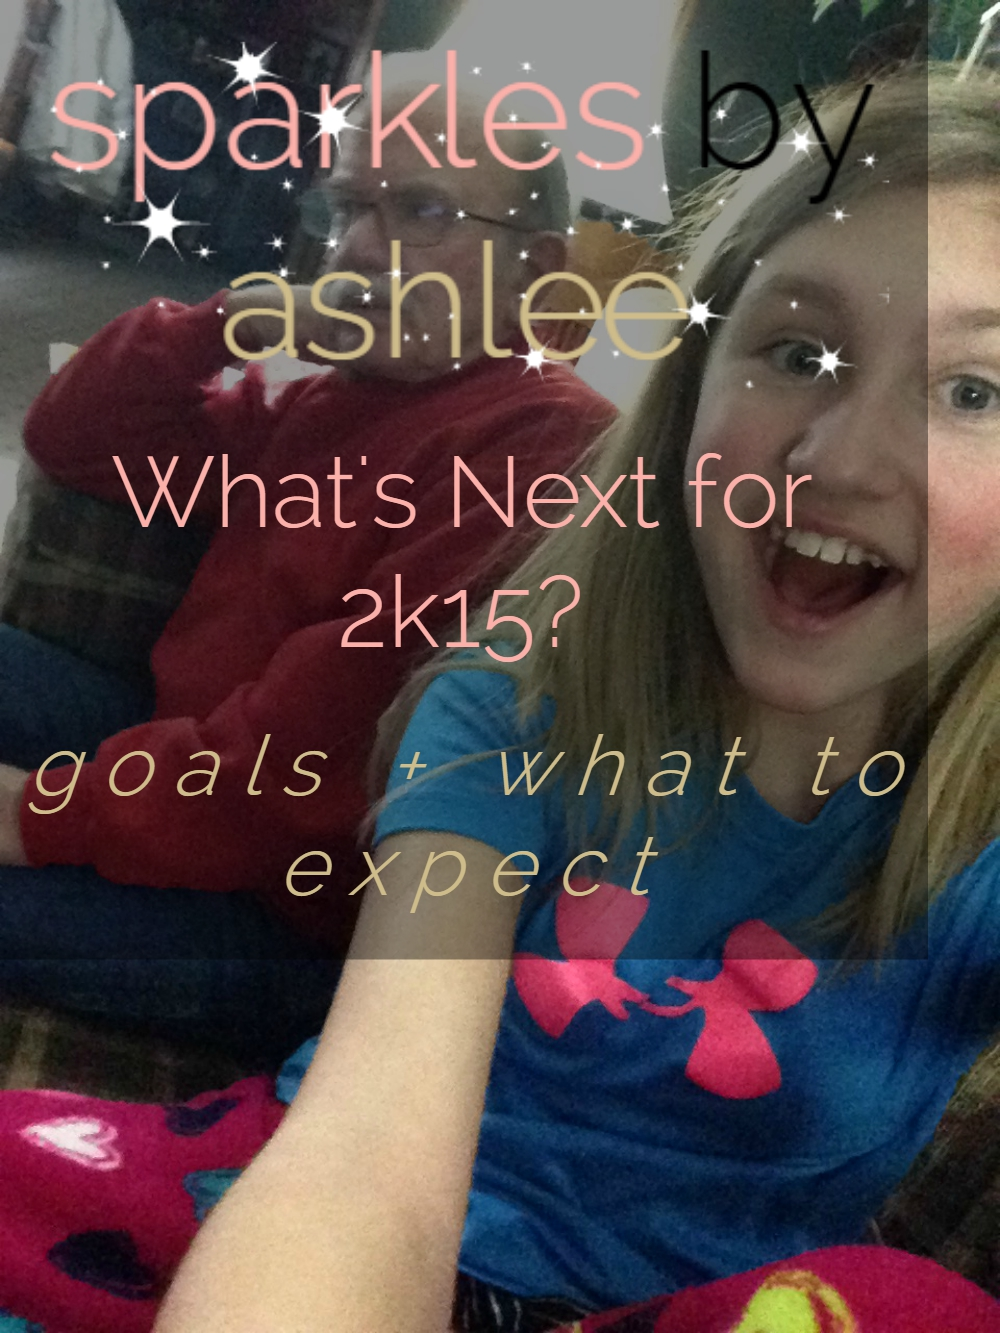 What's-Next-for-2k15-Sparkles-by-Ashlee.jpg